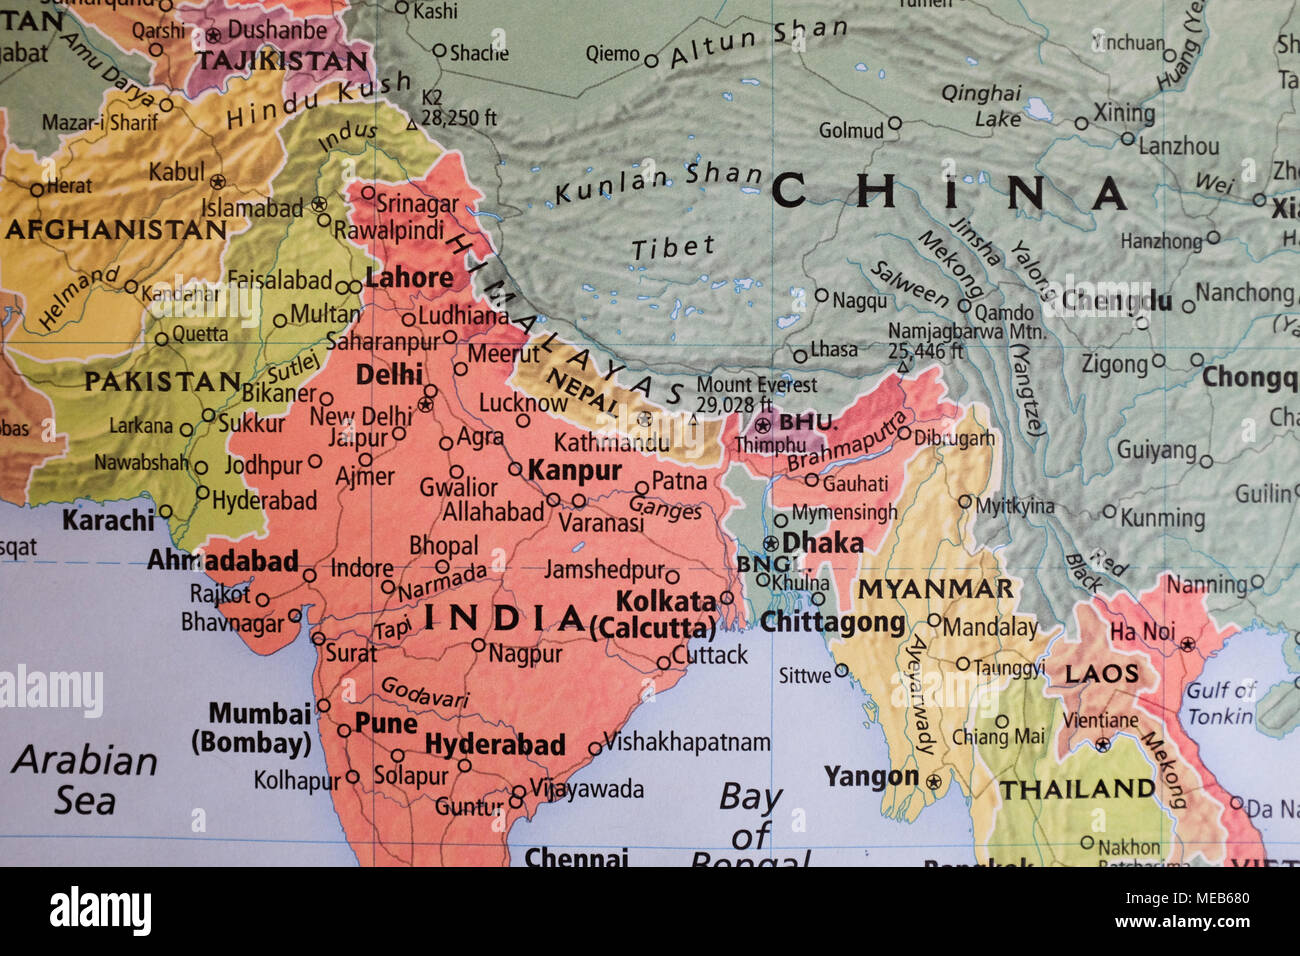 Map Of China And India A map showing China and India Stock Photo: 180955264   Alamy